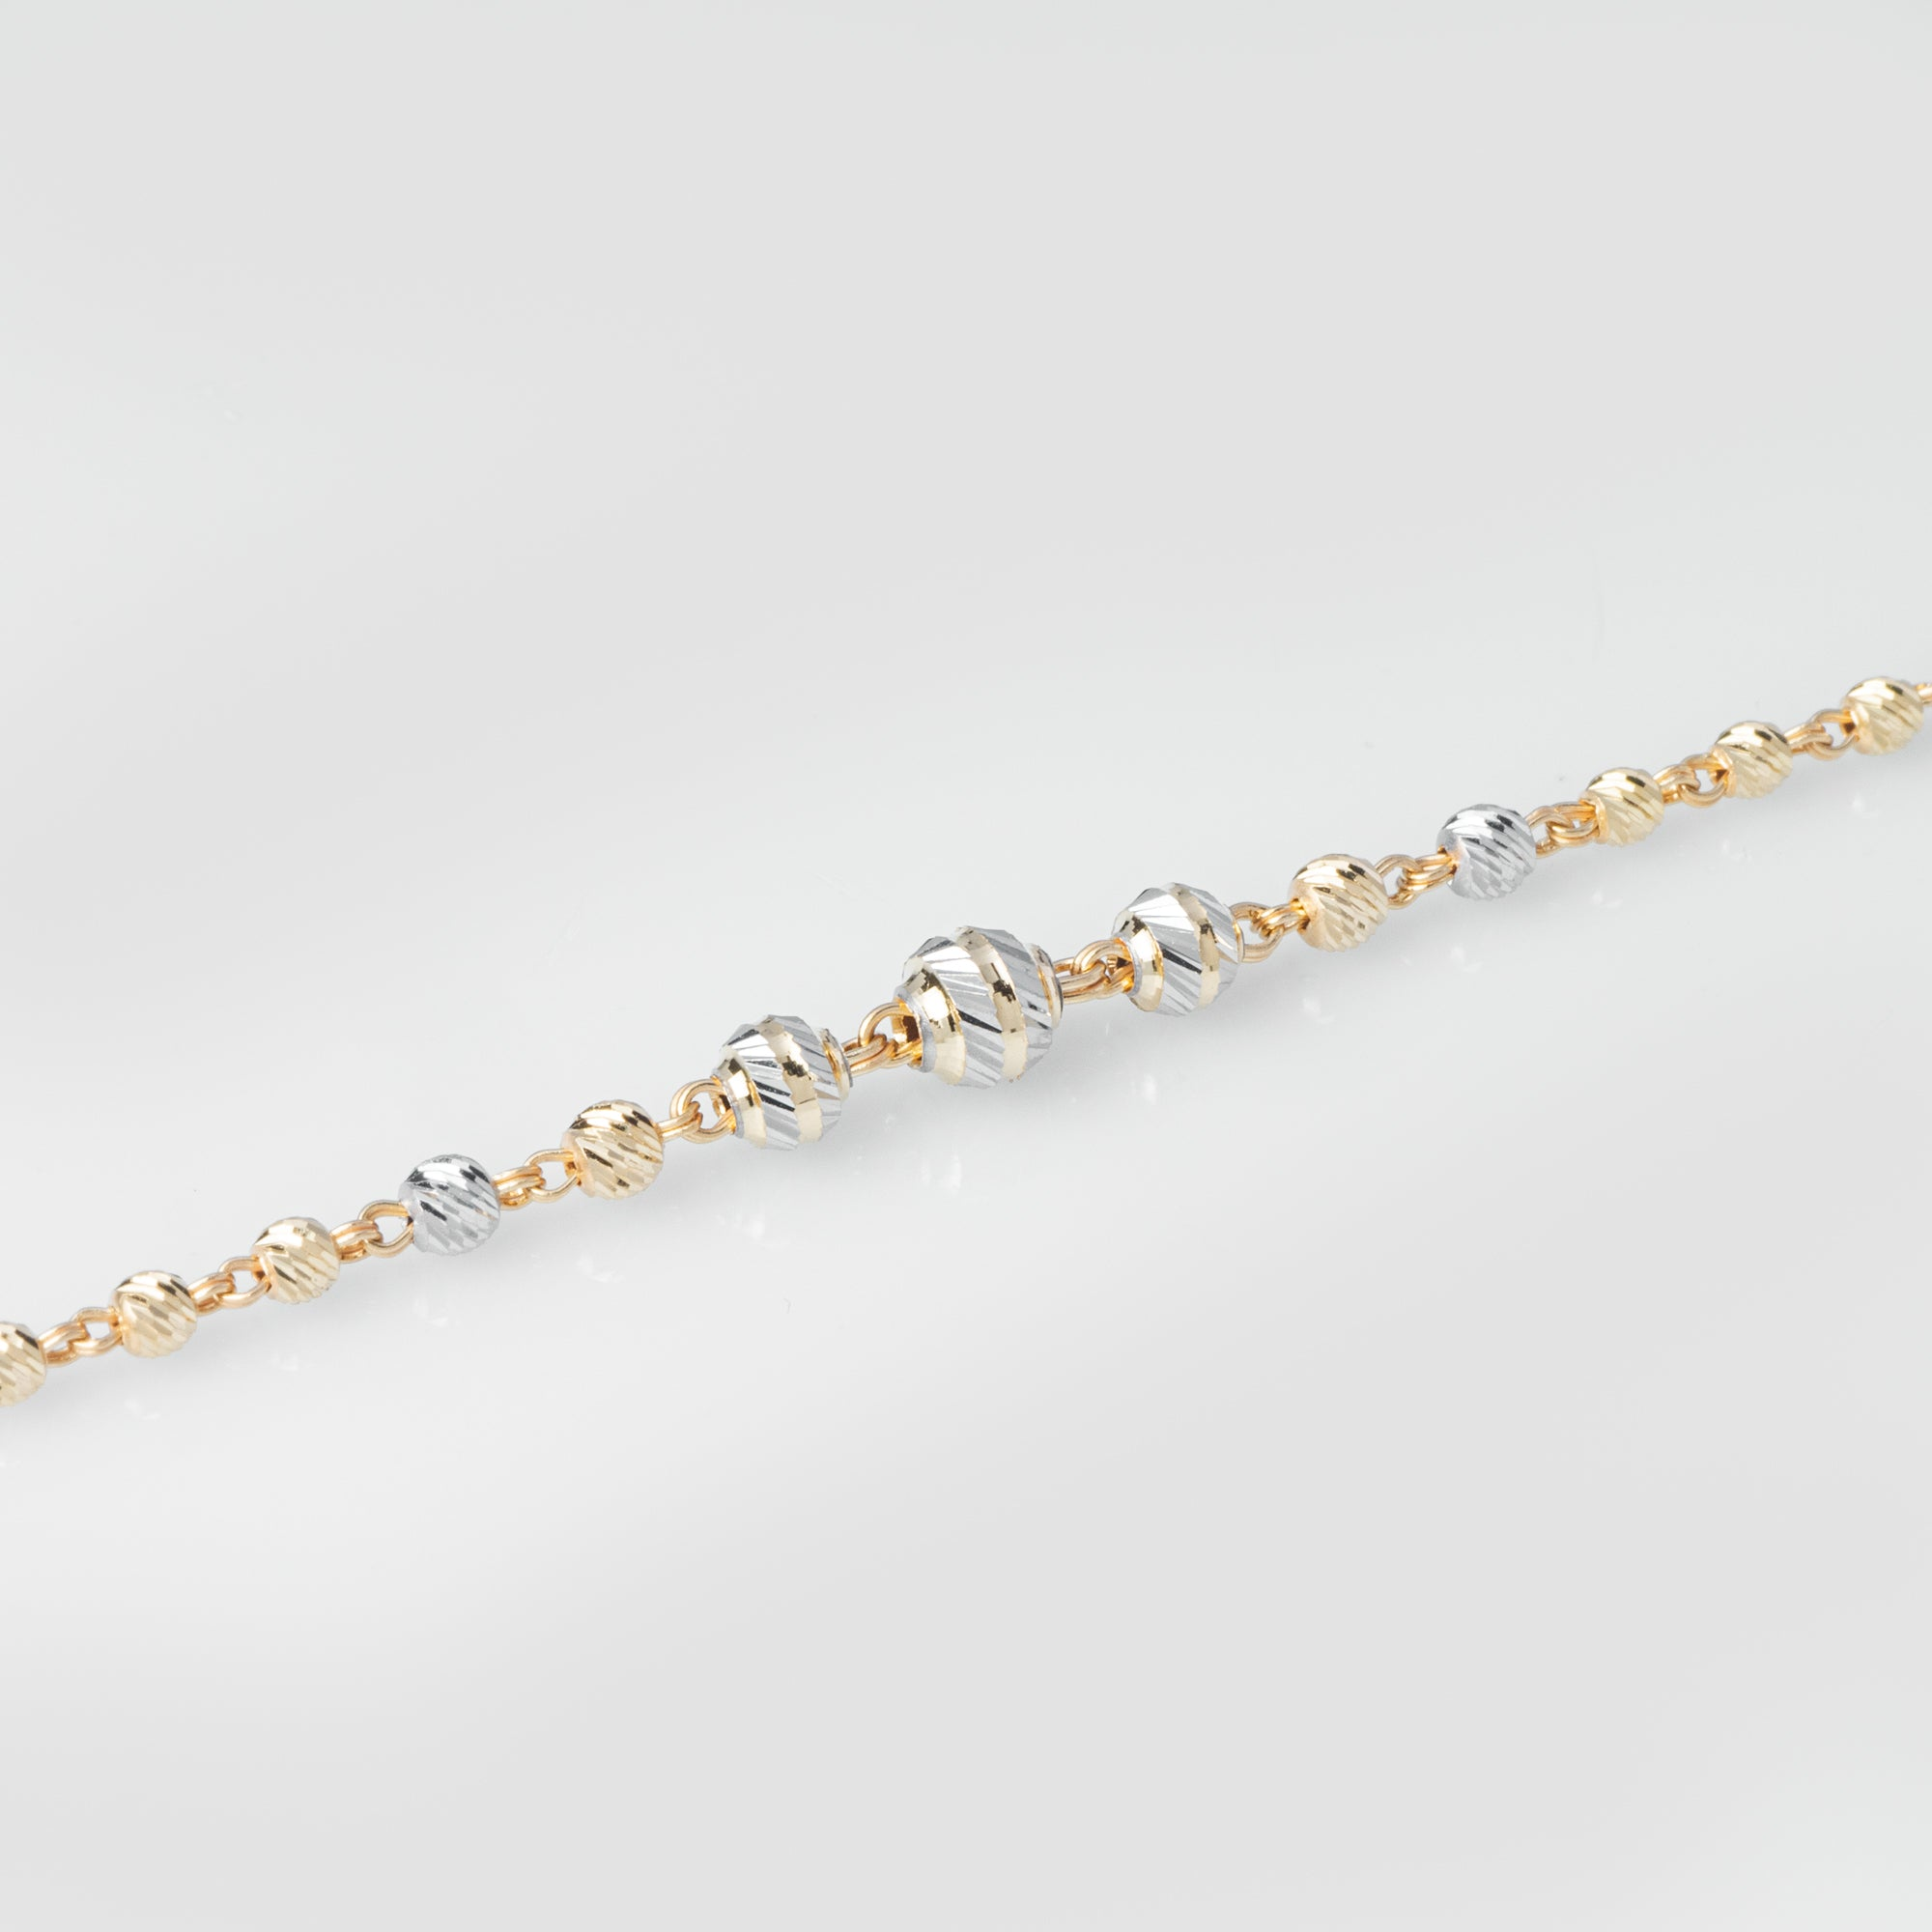 22ct Gold Diamond Cut & Rhodium Design Bracelet (3.9g) LBR-8023